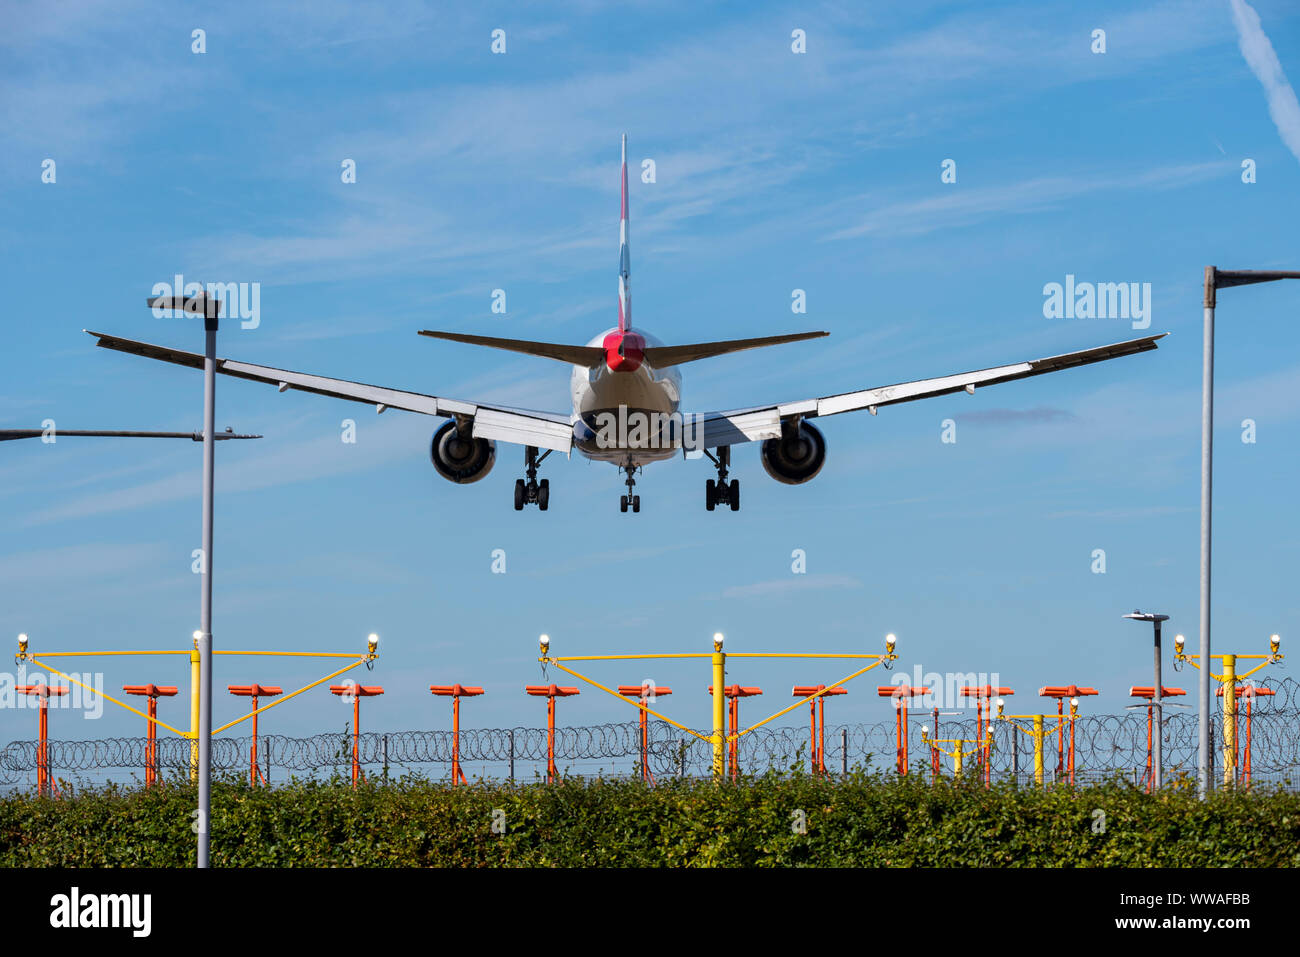 british-airways-jet-airliner-plane-landing-at-london-heathrow-airport-in-hounslow-london-uk-behind-runway-approach-threshold-lights-space-for-copy-WWAFBB.jpg